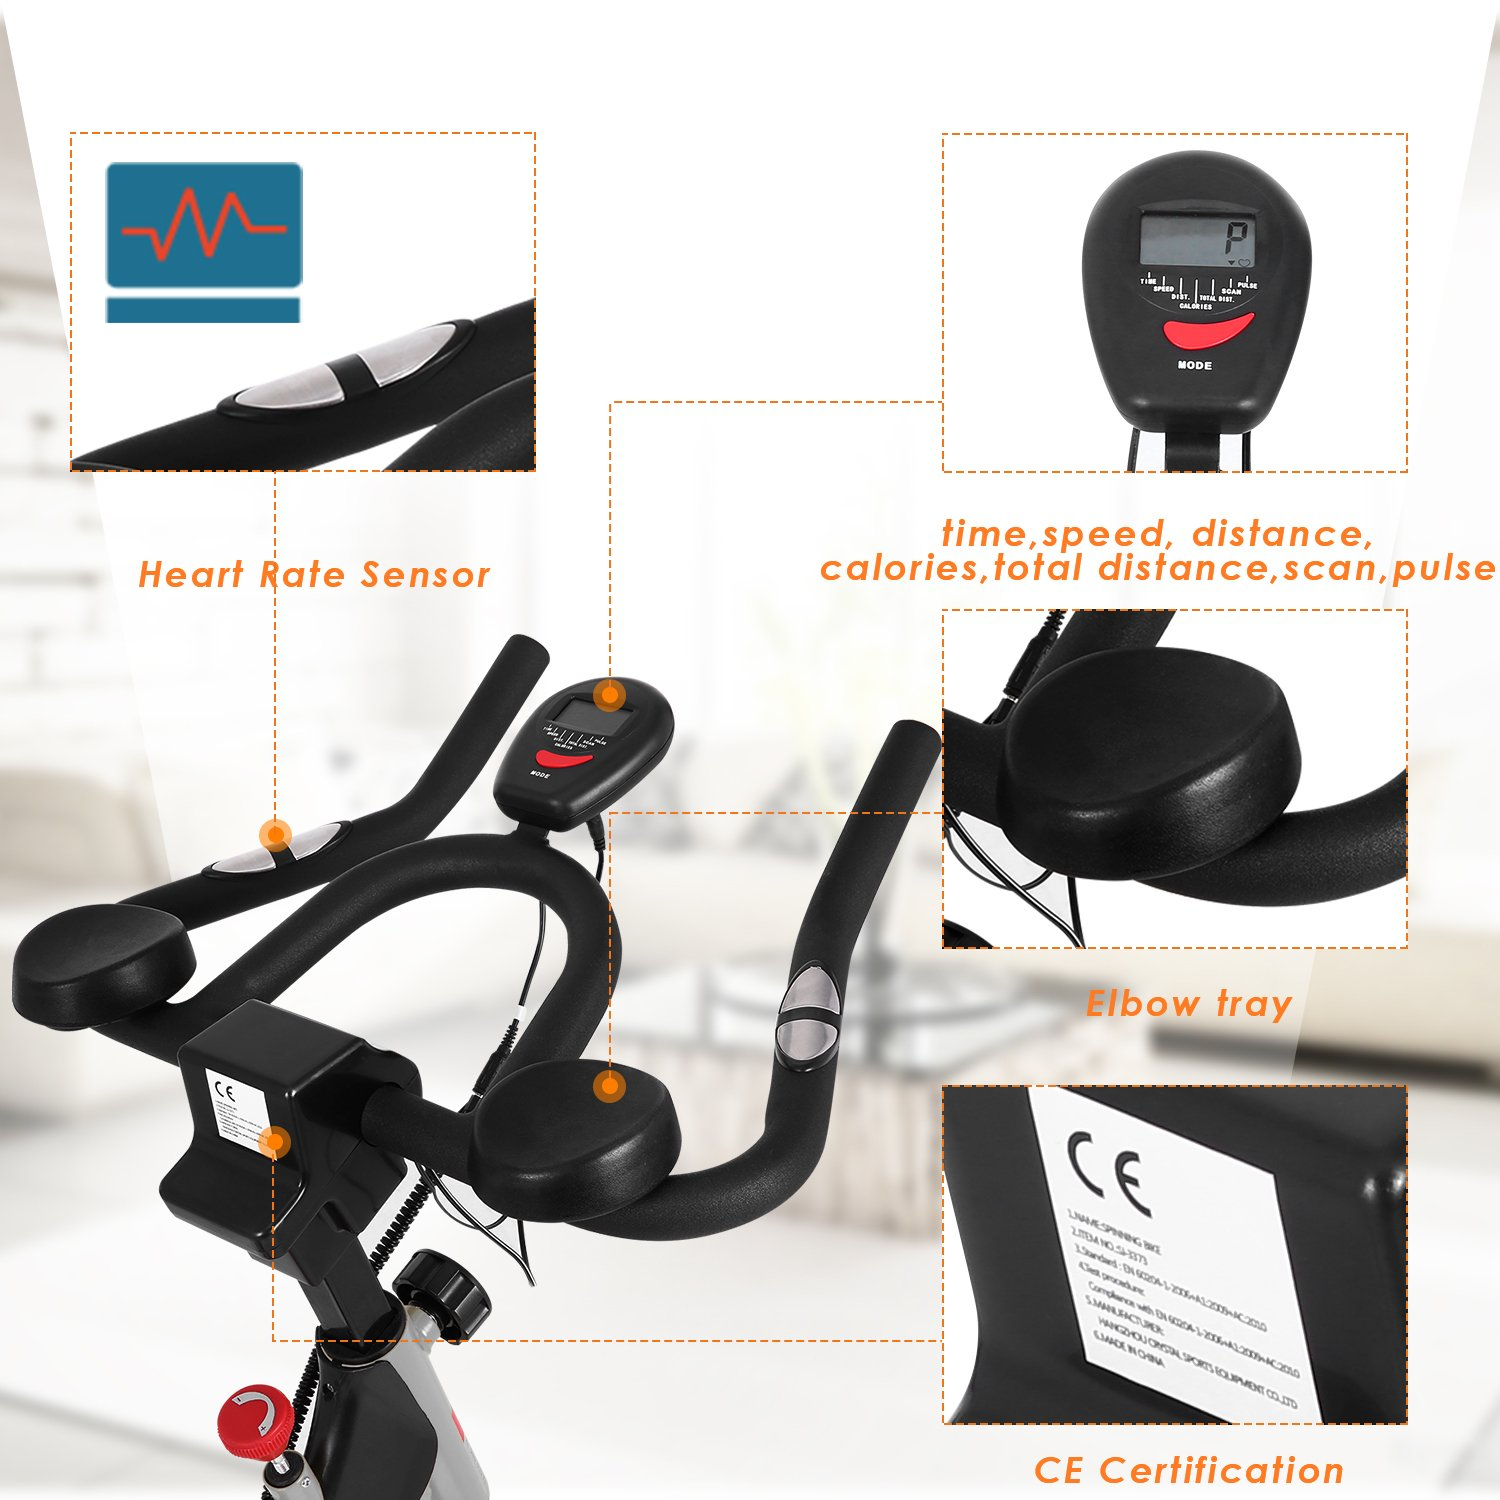 ANCHEER Stationary Bike, 40 LBS Flywheel Belt Drive Indoor Cycling Exercise Bike with Pulse, Elbow Tray (Model: ANCHEER-A5001) (Sliver) by ANCHEER (Image #4)